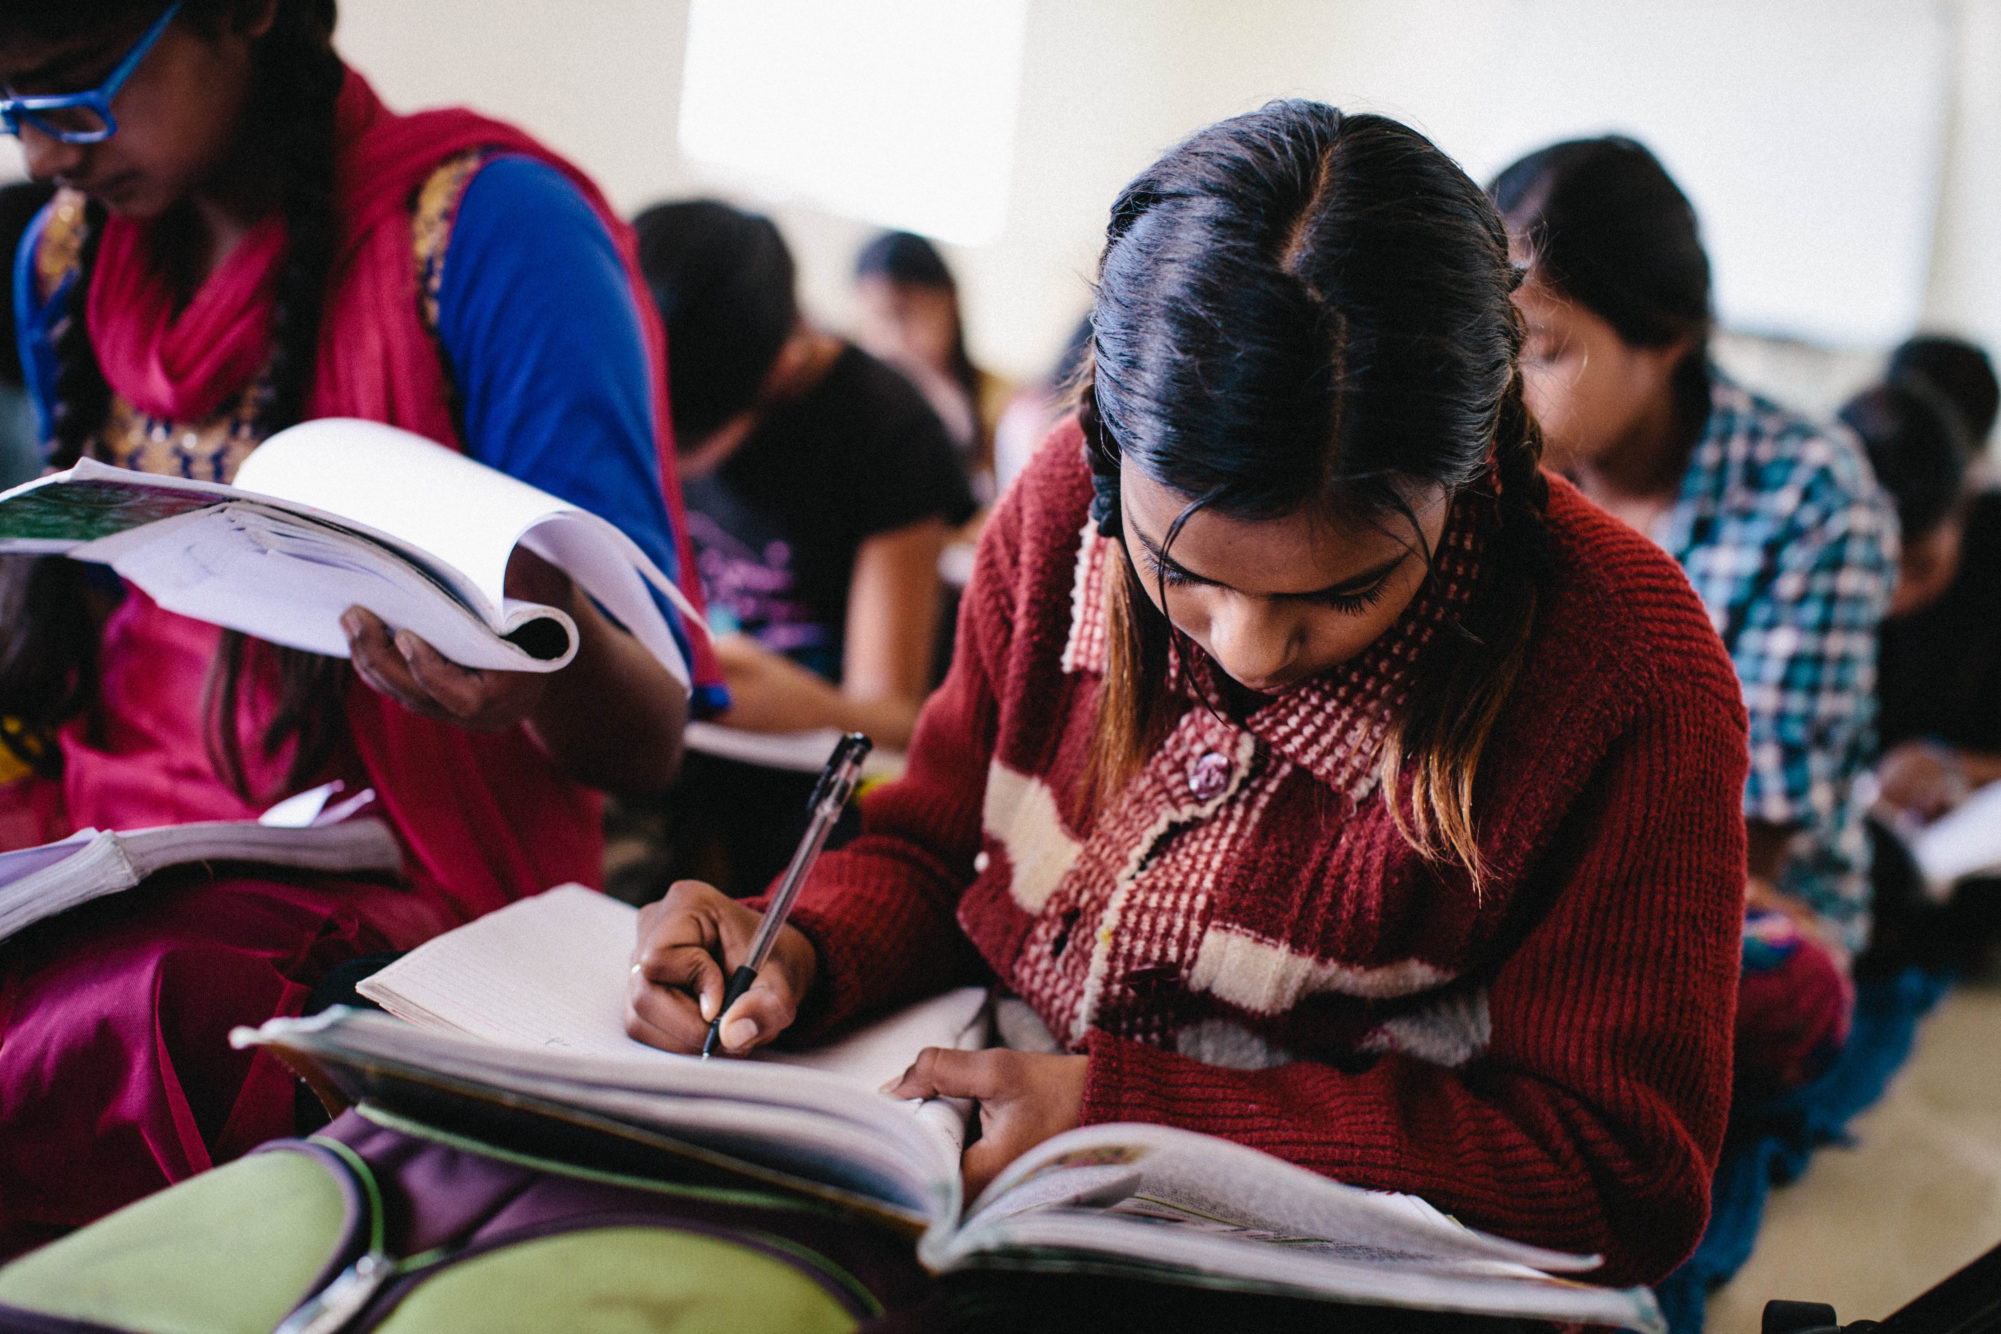 School girl in India wearing a red coat focuses on her studies and looks down at book